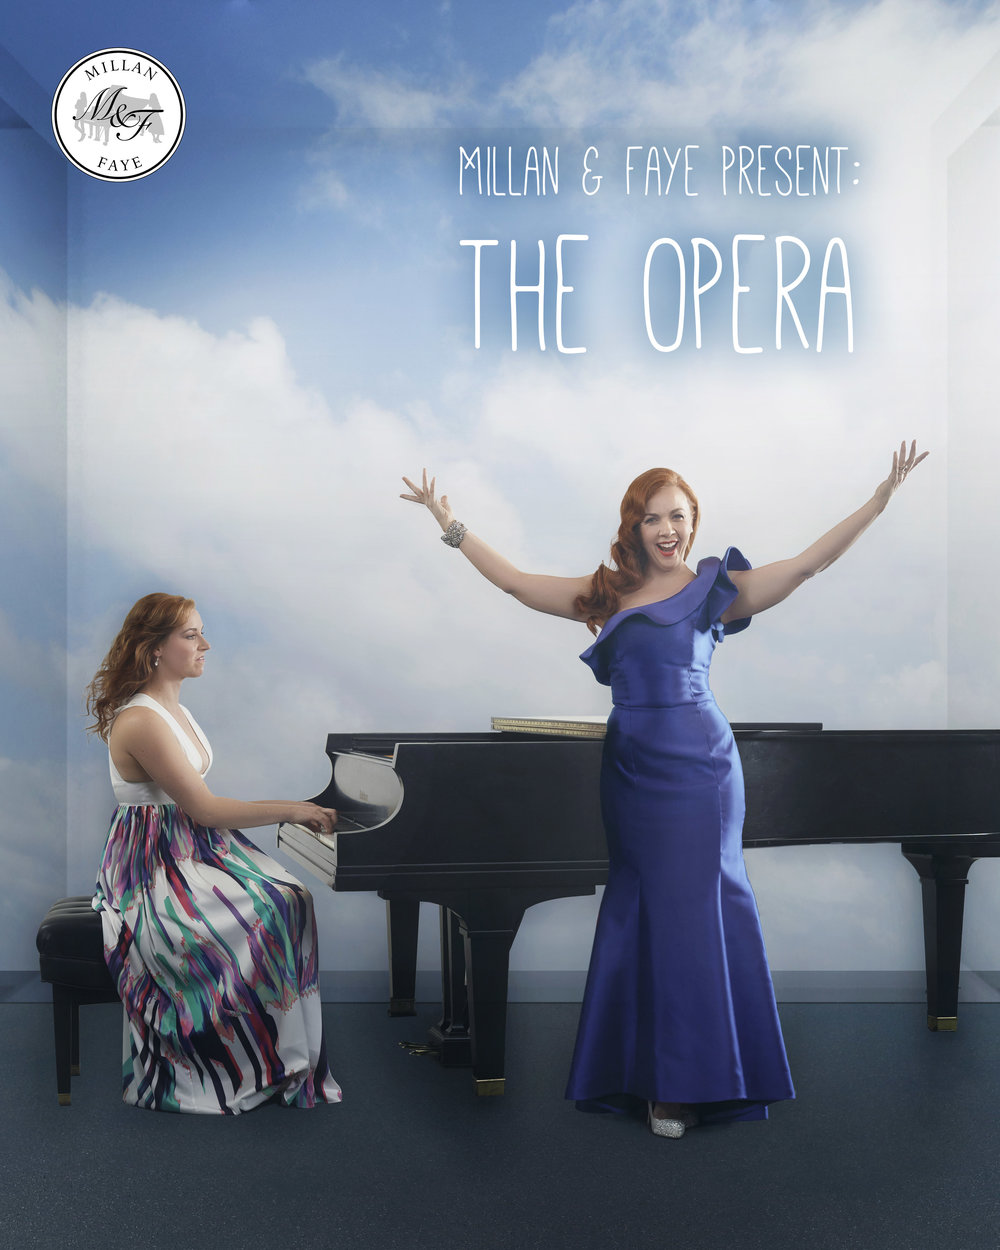 MillanFayePresent_The Opera_Blue Photo_V3.jpg